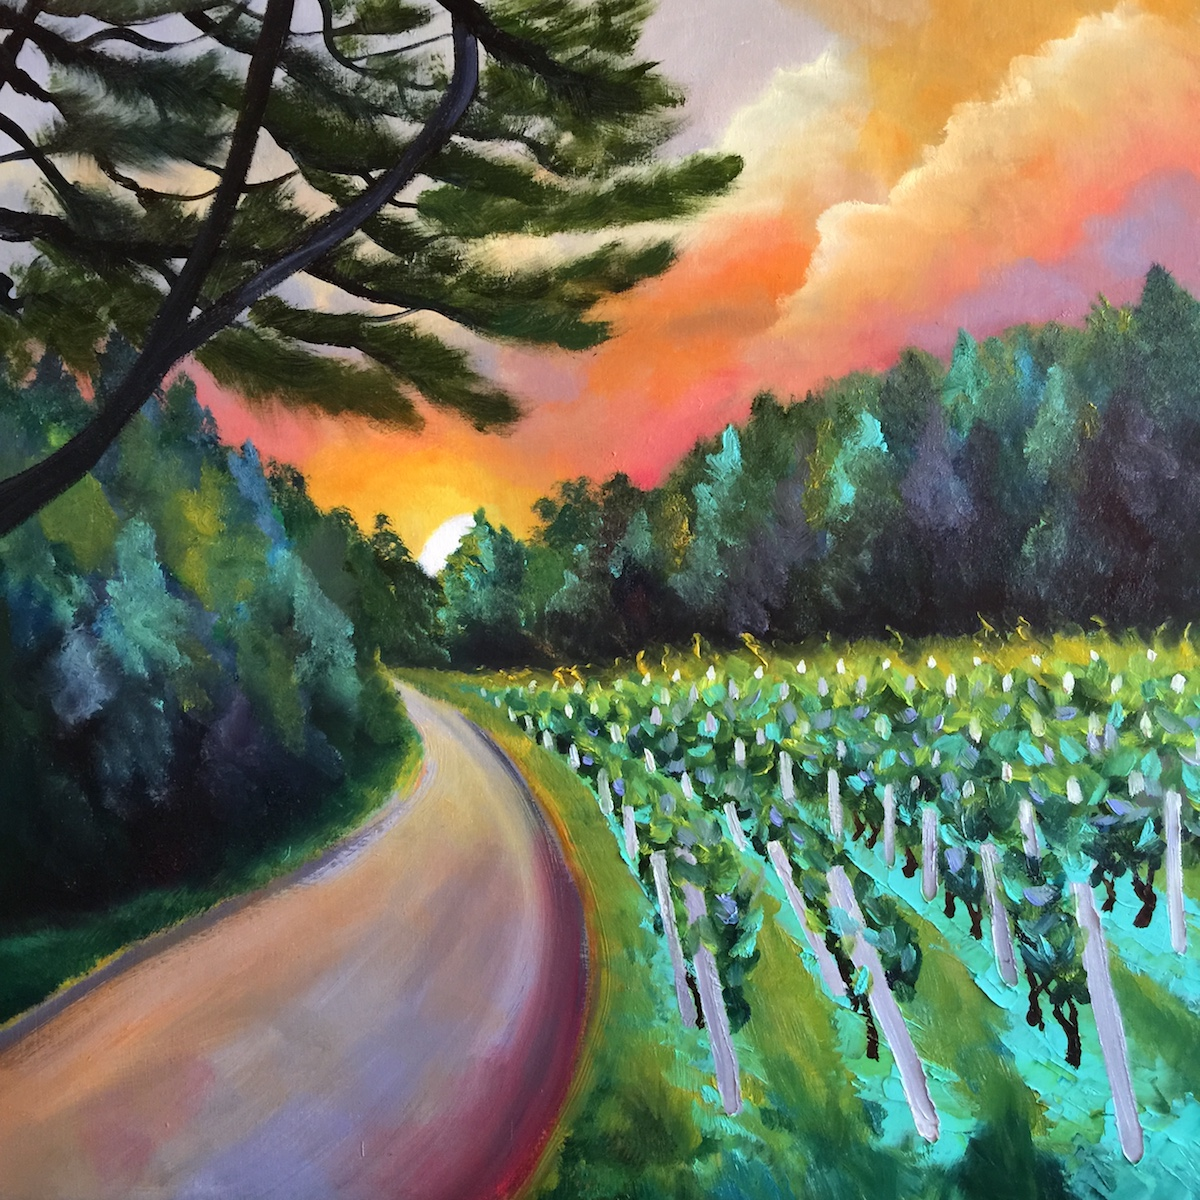 Raftshol Vineyards - Painting by Stephanie Schlatter